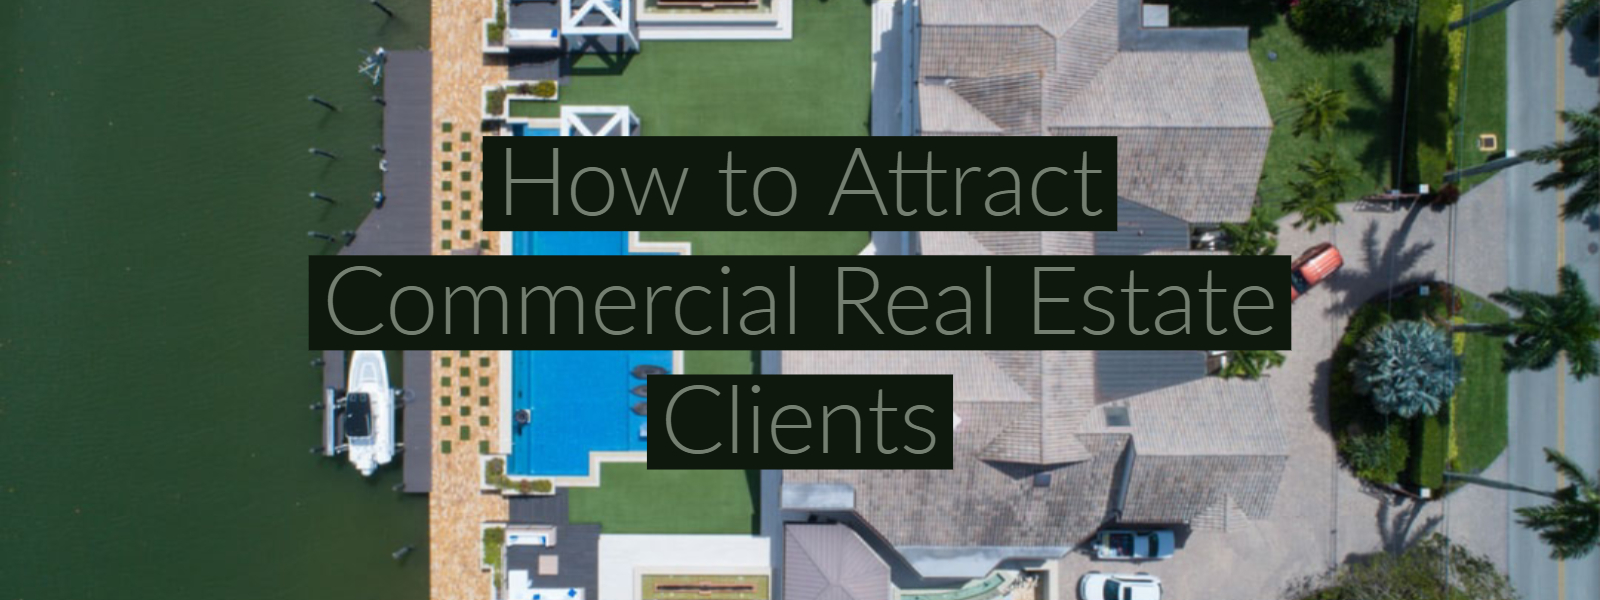 How to Attract Commercial Real Estate Clients